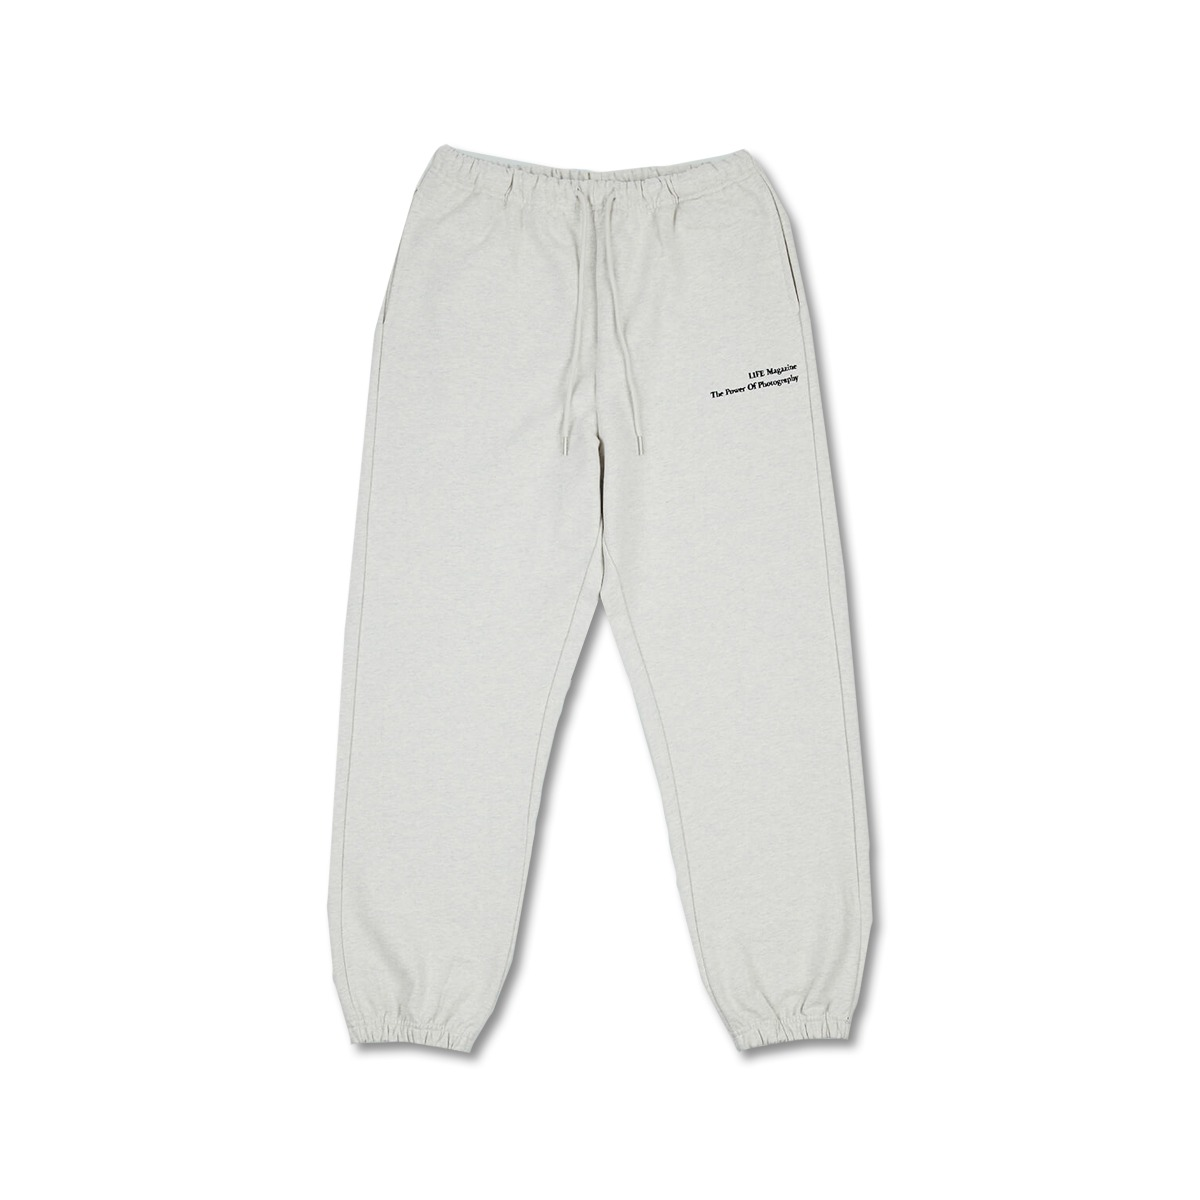 [LIFE ACHIVE] CLASSIC LETTERING SWEAT PANTS 'OATMEAL'